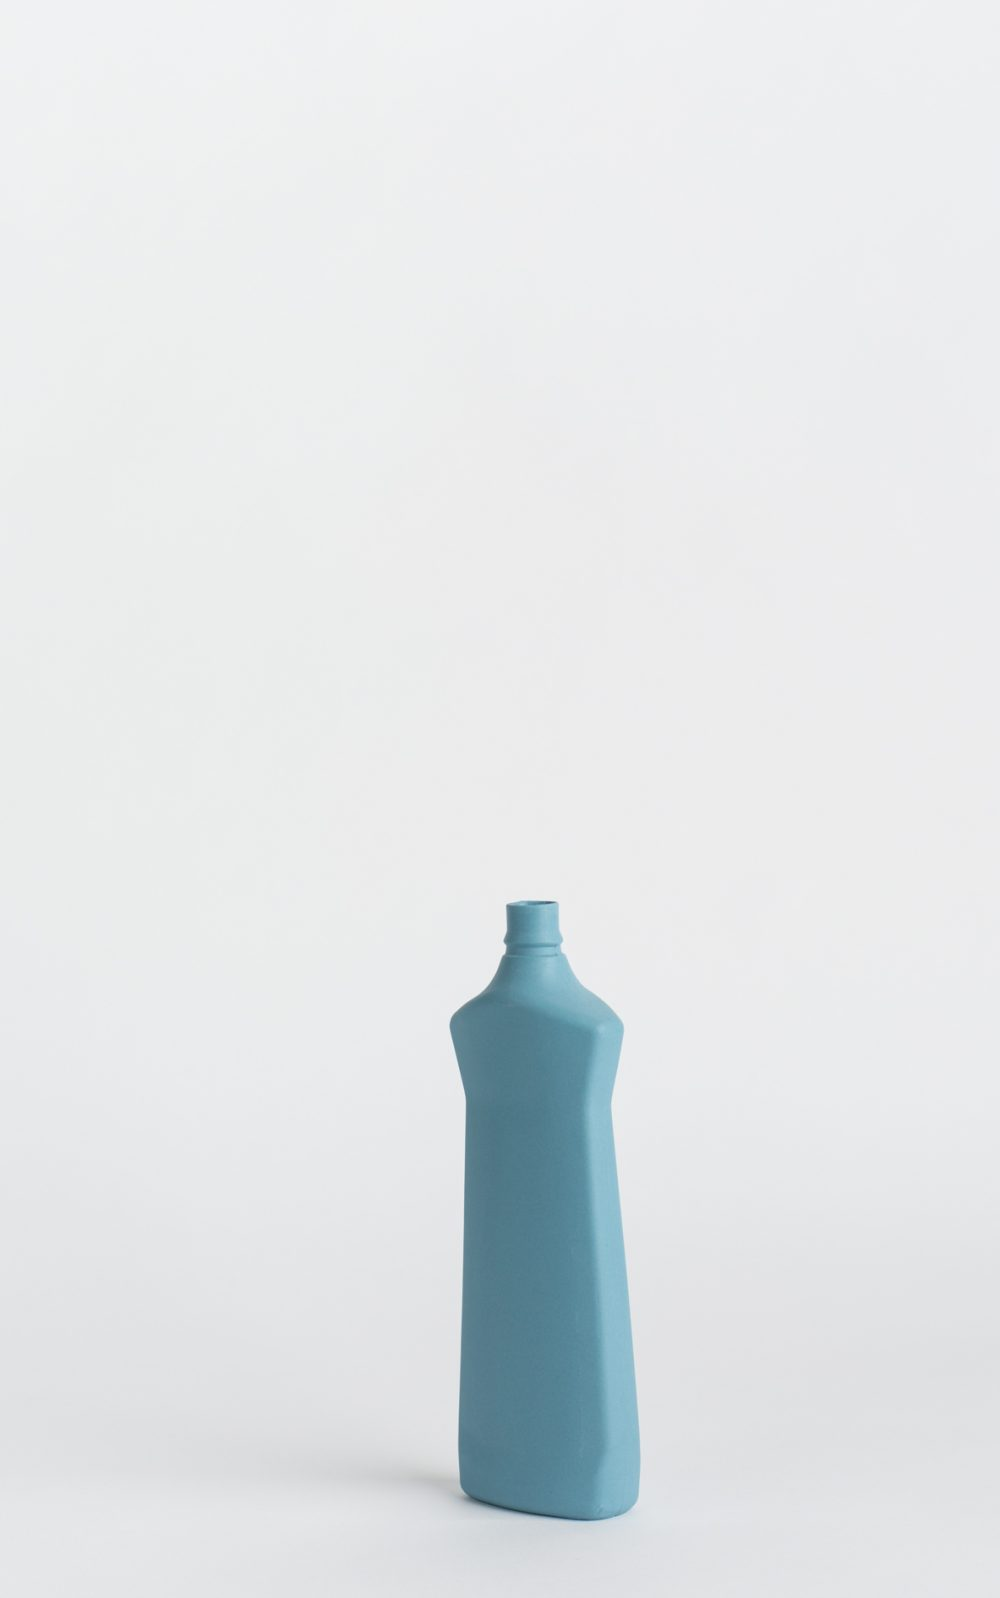 bottle vase #1 dark blue